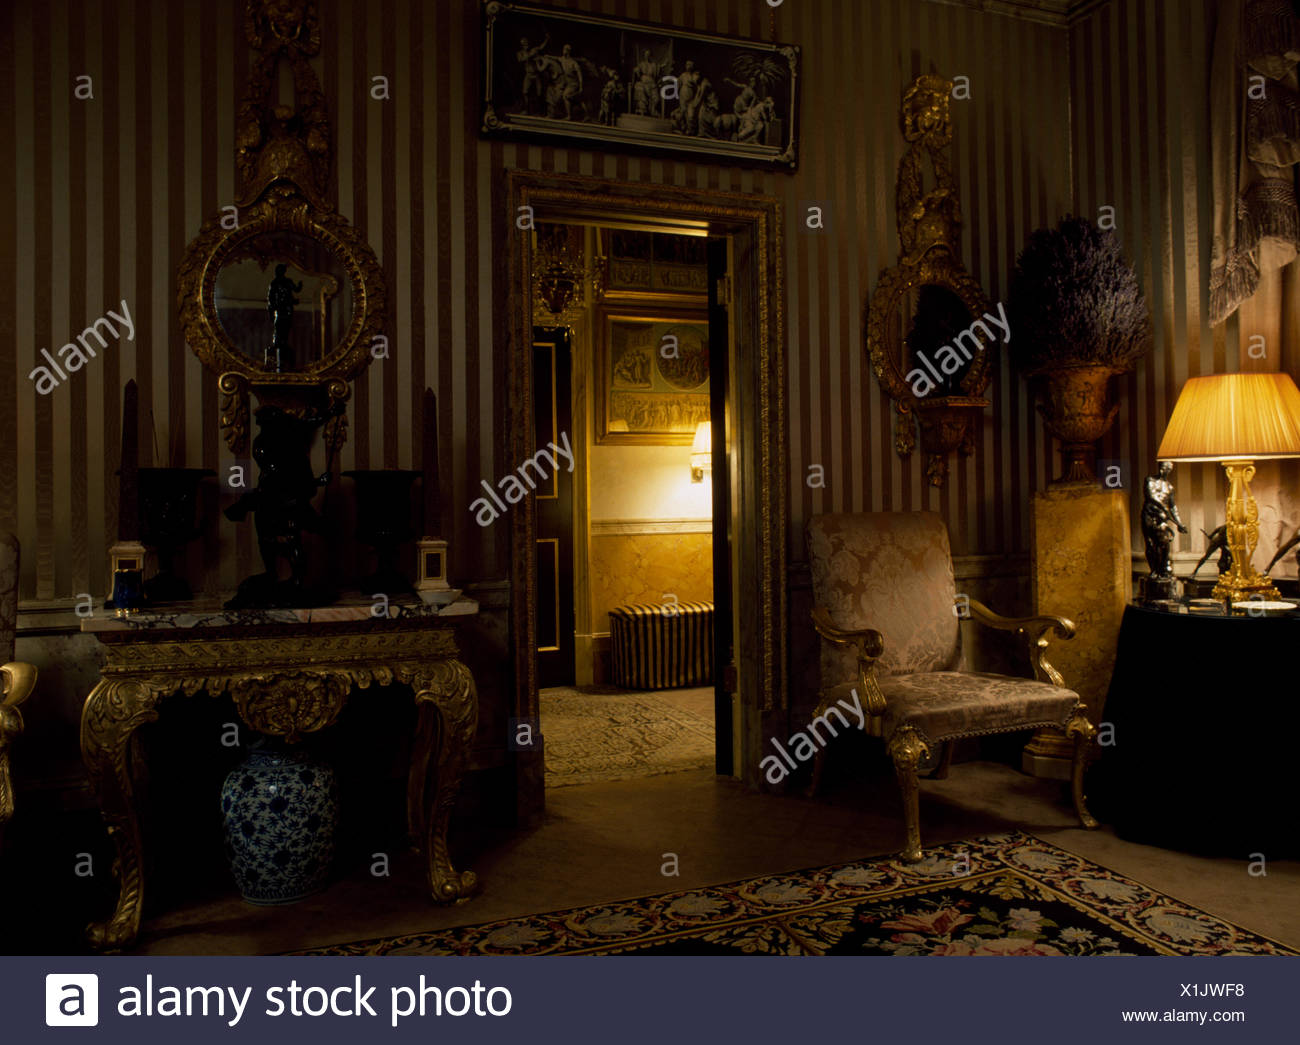 Antique Gilt Furniture And Striped Wallpaper In Regency Style Drawing Room